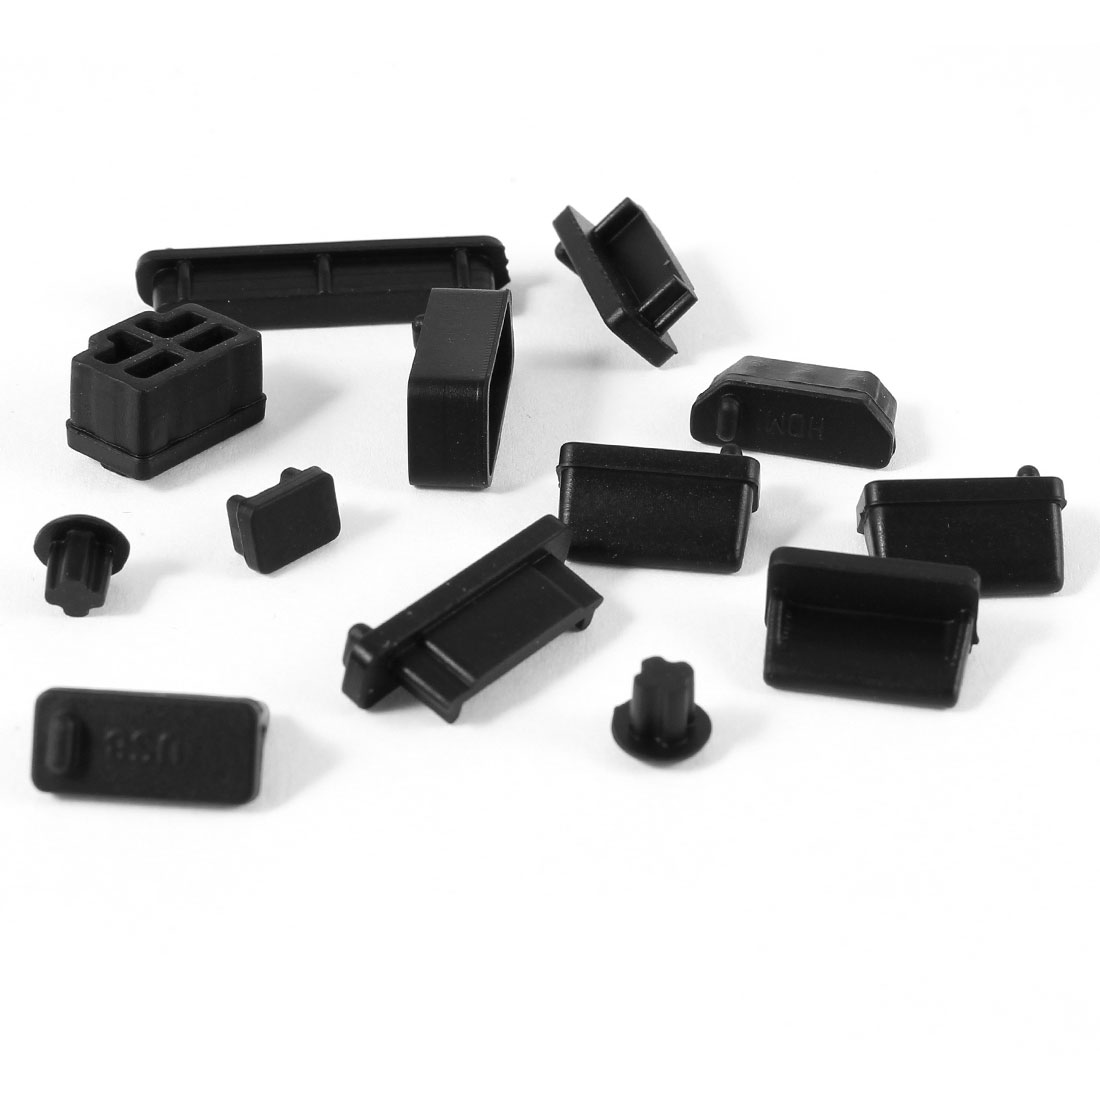 12pcs Silicone Ports Protector Cover Anti-Dust Connector Stopper Black for Laptop